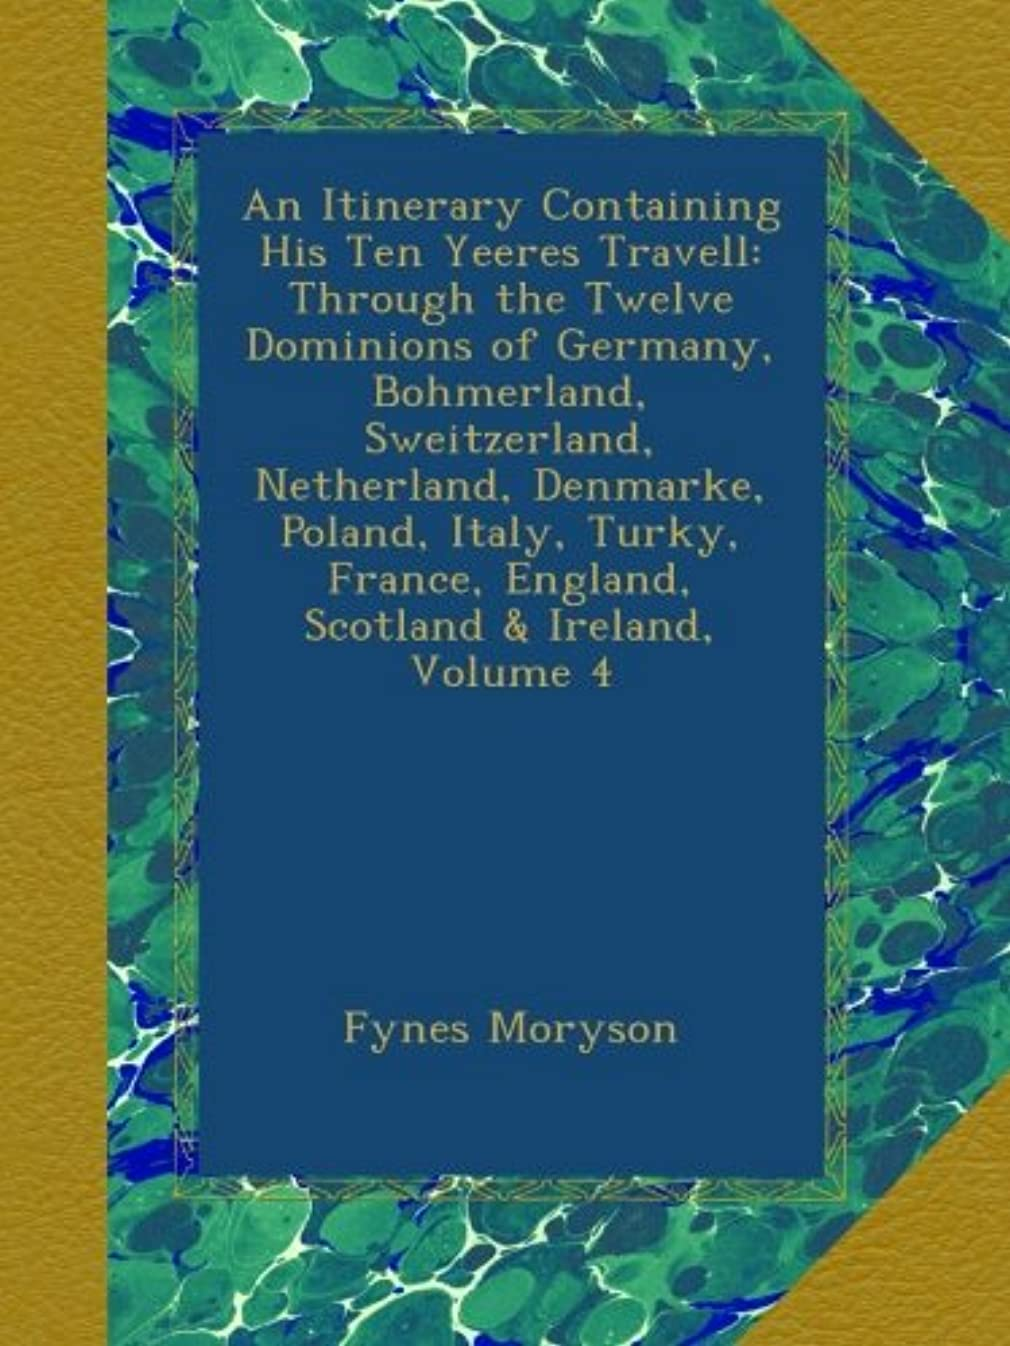 電子間違っている確認An Itinerary Containing His Ten Yeeres Travell: Through the Twelve Dominions of Germany, Bohmerland, Sweitzerland, Netherland, Denmarke, Poland, Italy, Turky, France, England, Scotland & Ireland, Volume 4